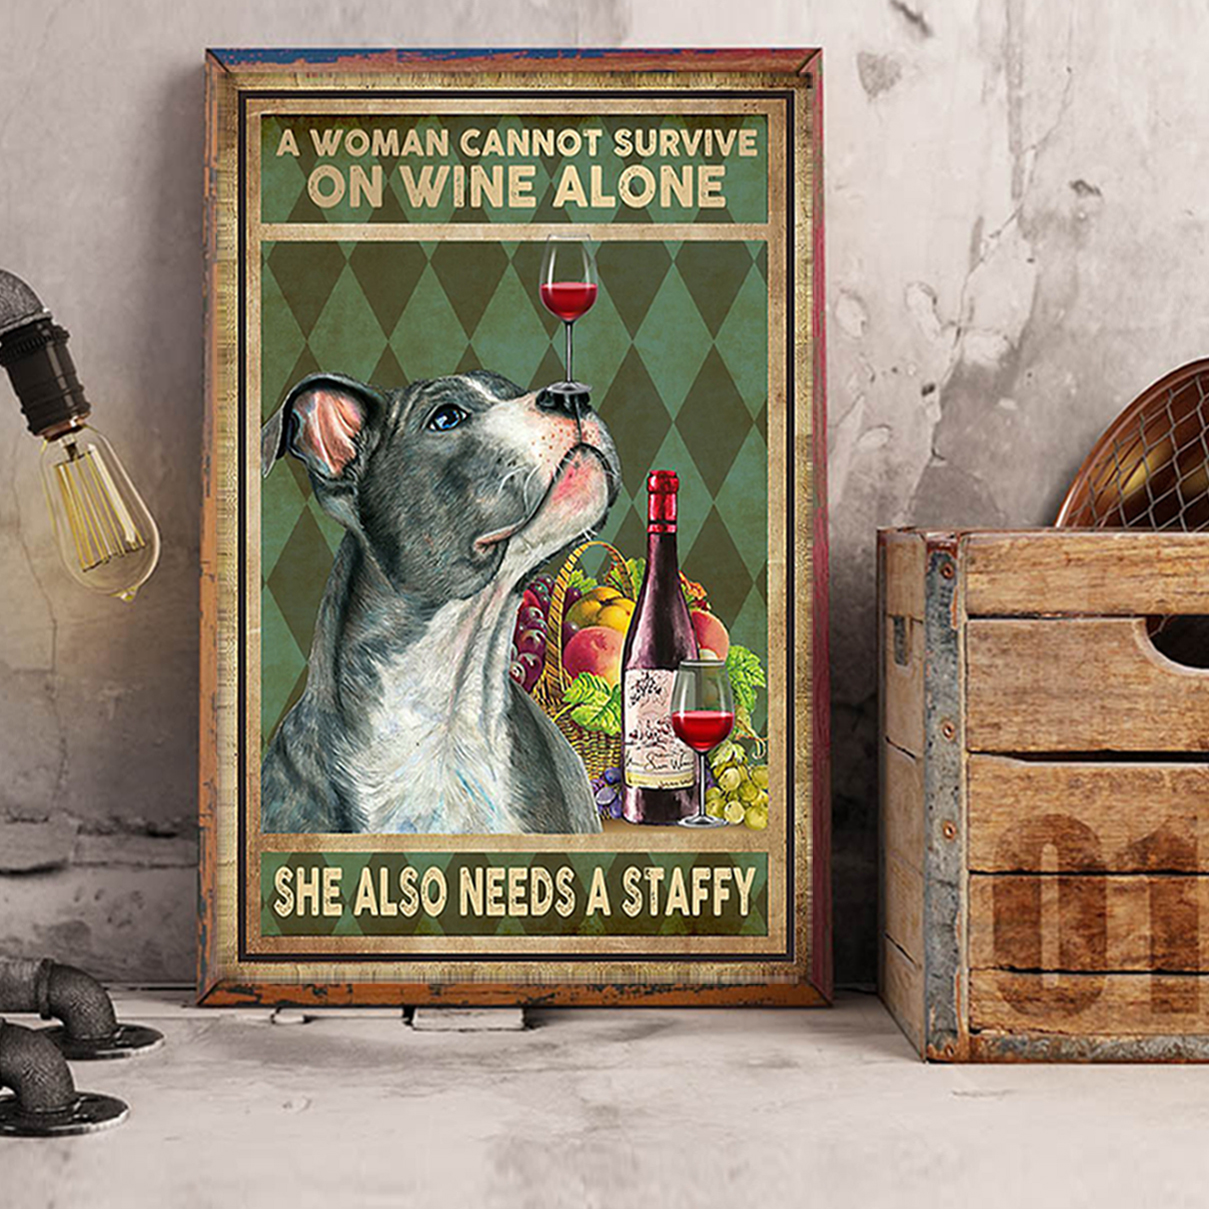 A woman cannot survive on wine alone she also needs a staffy poster A1